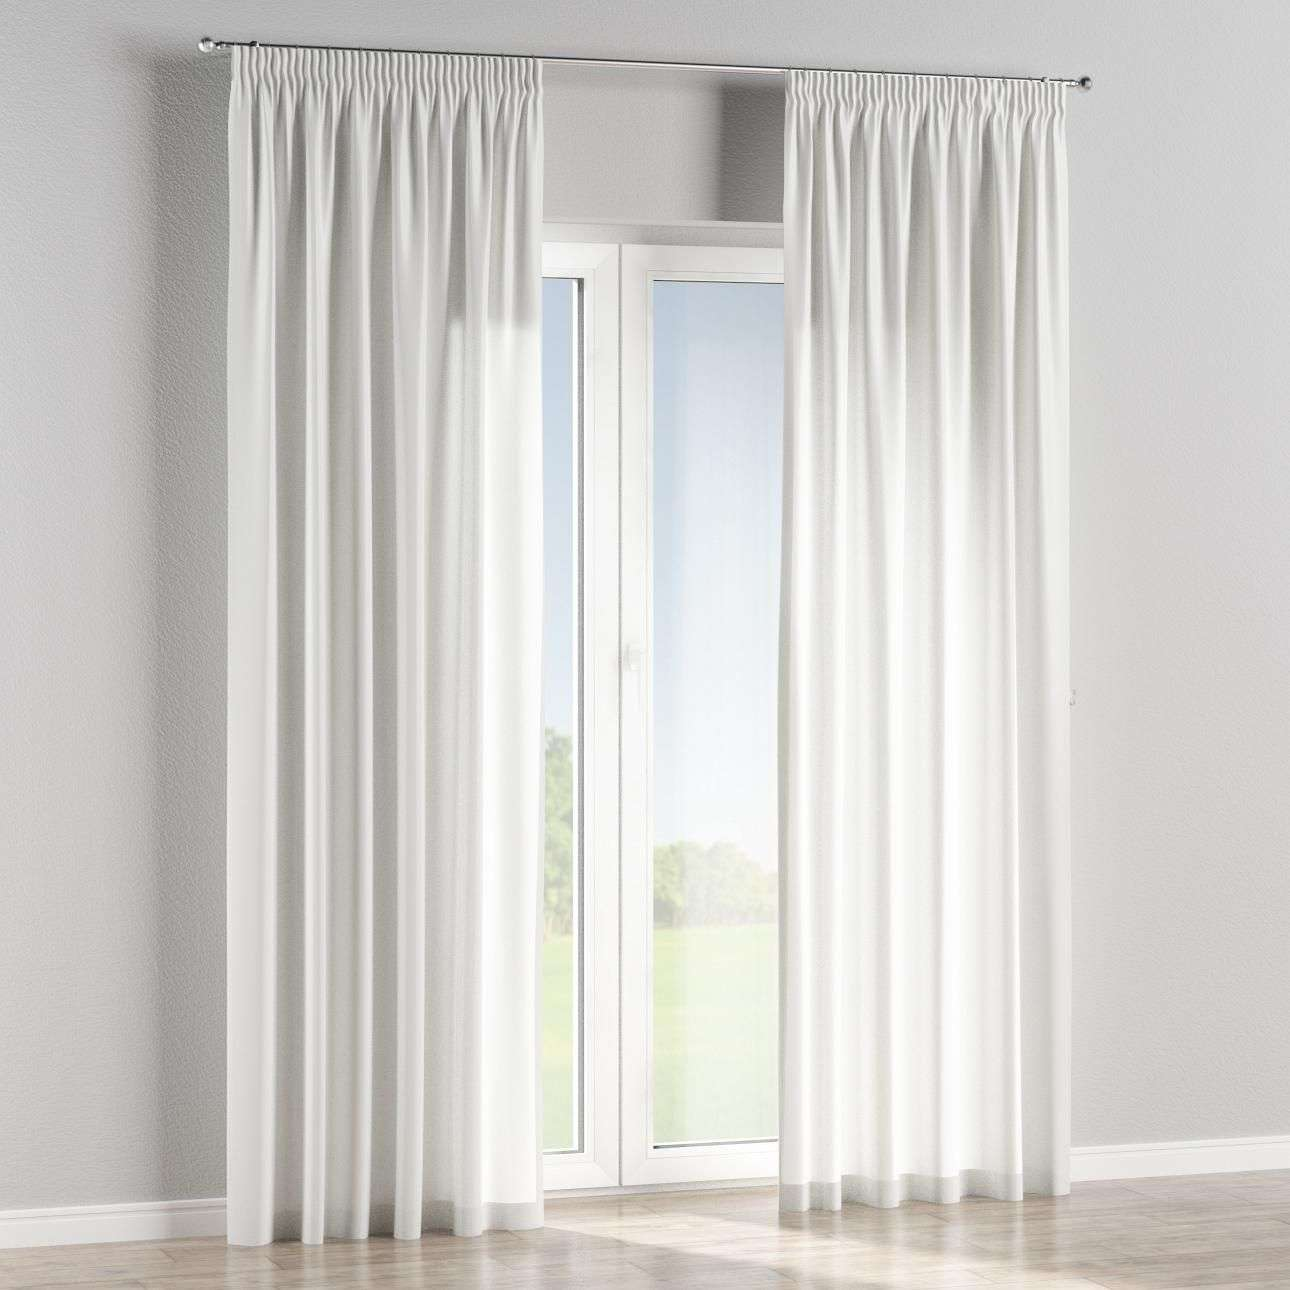 Pencil pleat lined curtains in collection Odisea, fabric: 411-01